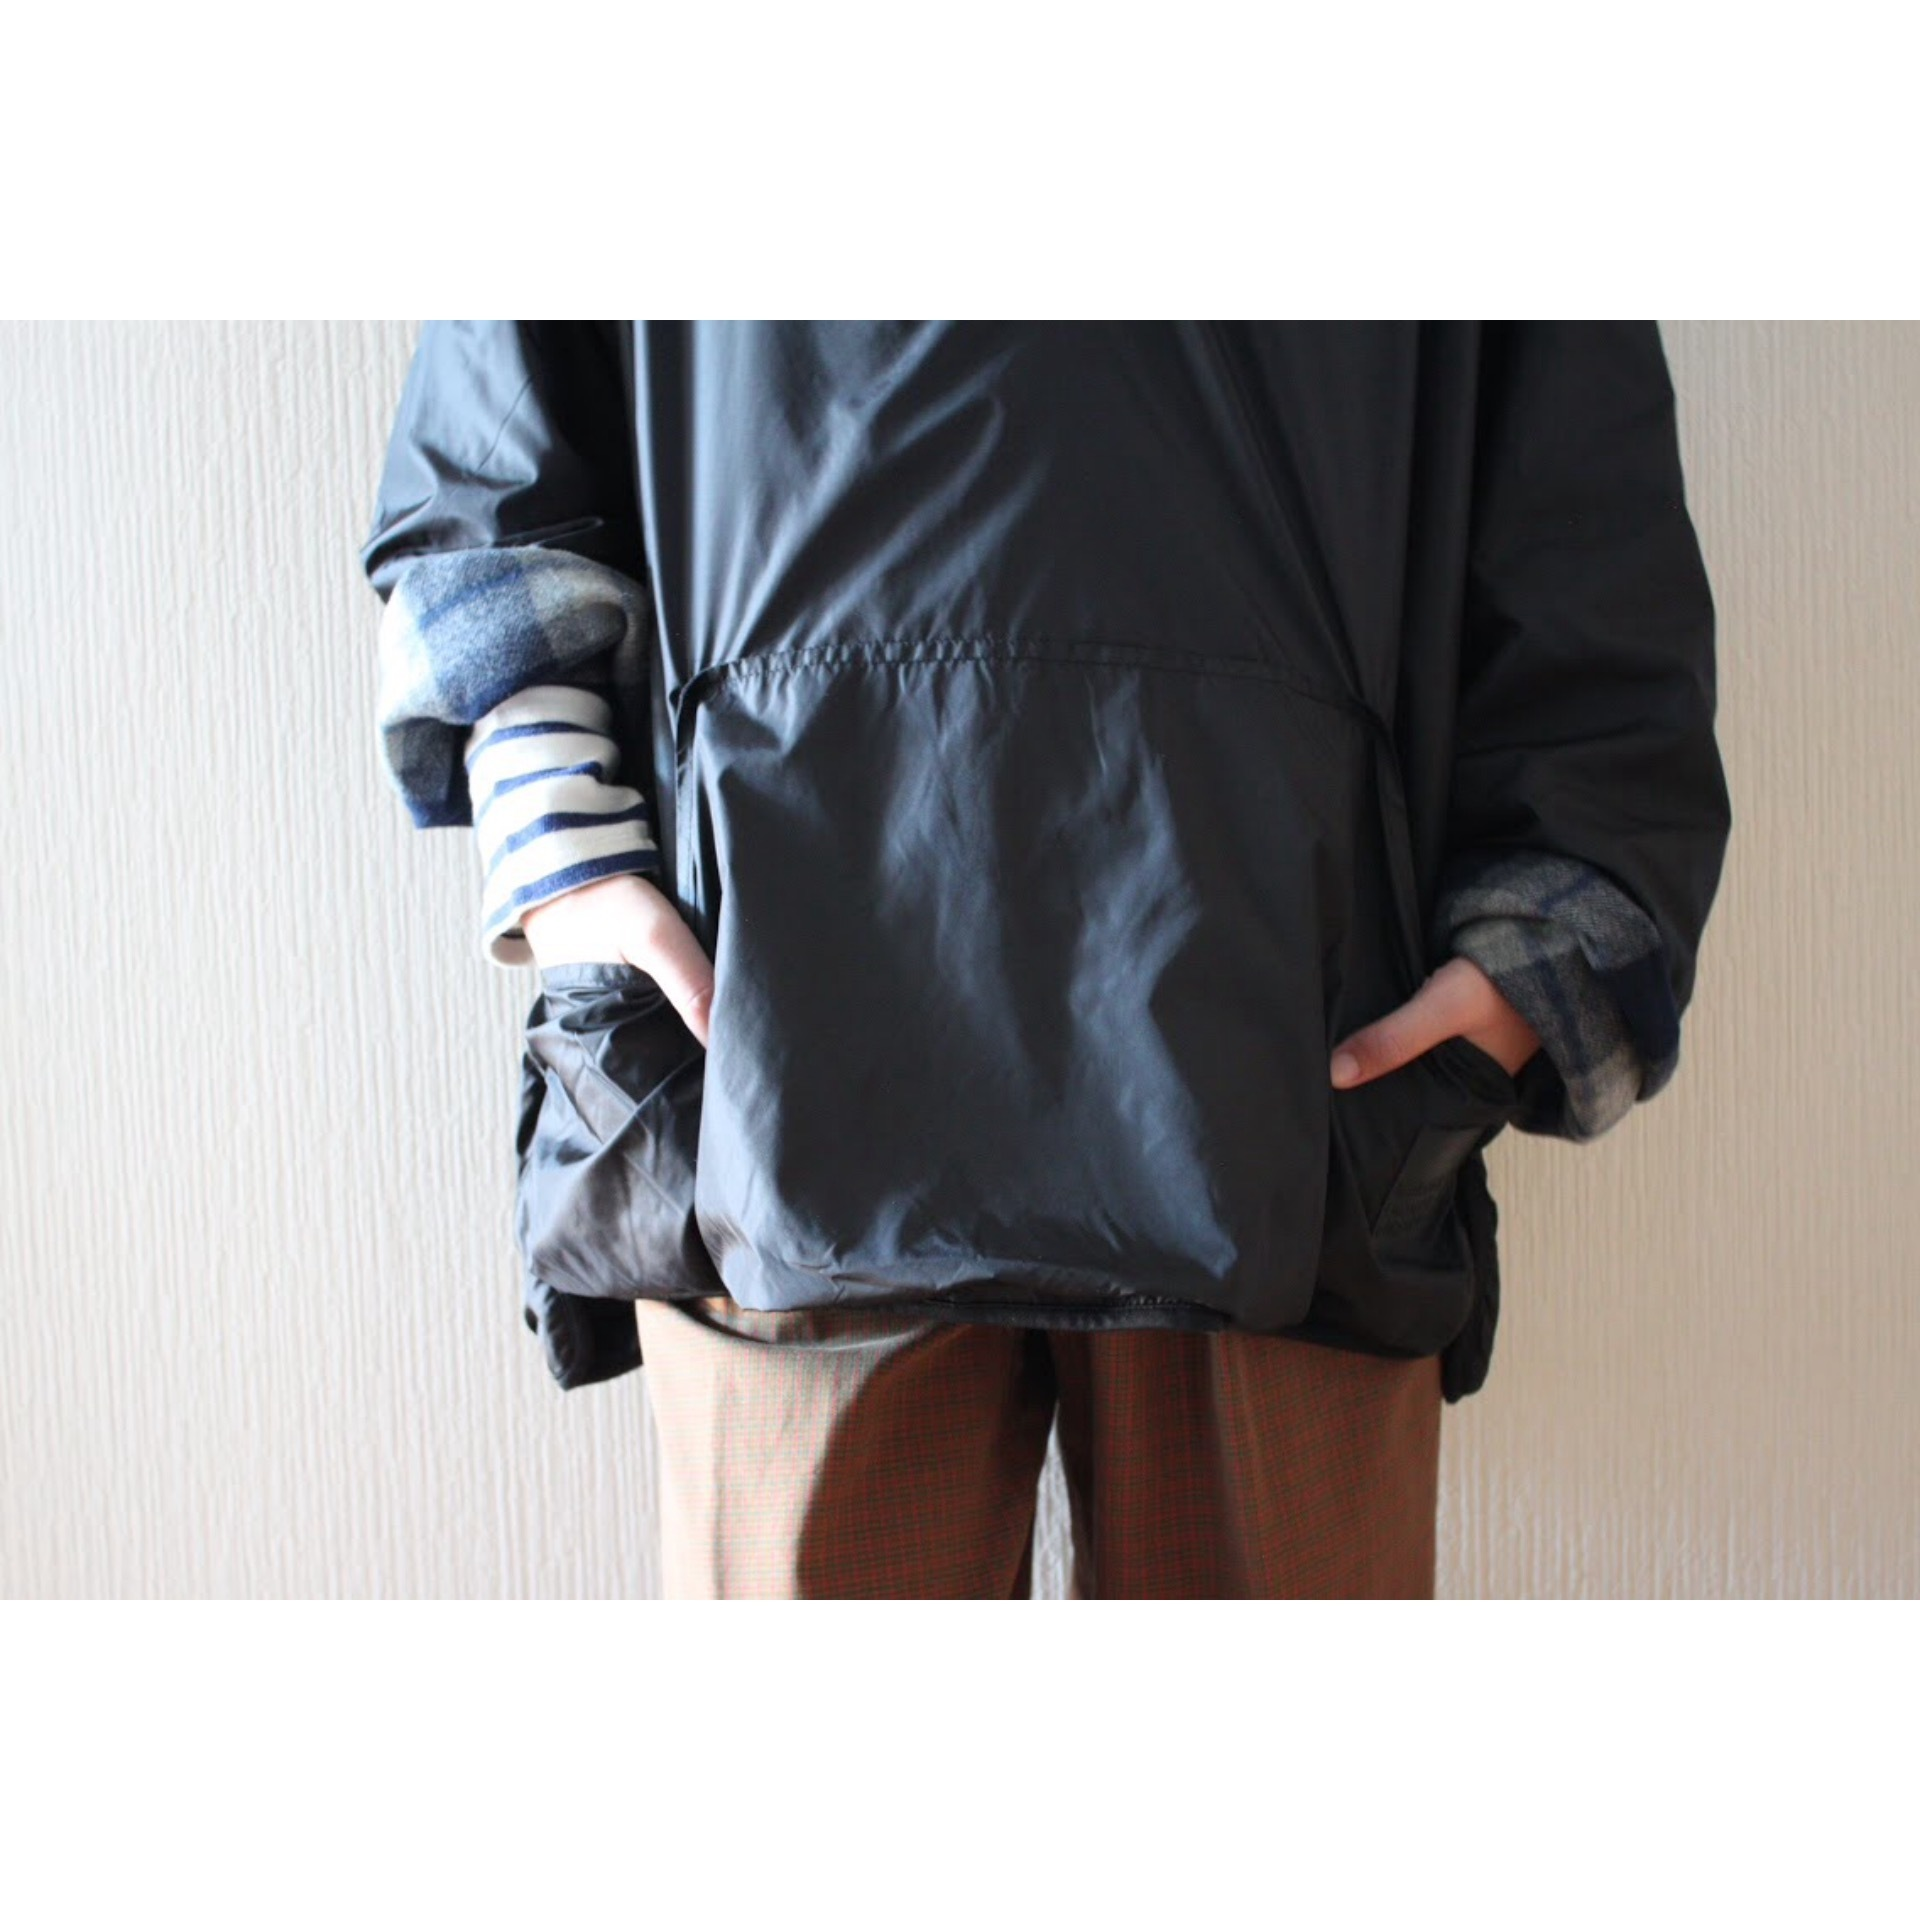 Reversible pullover jacket by Marithé + François Girbaud